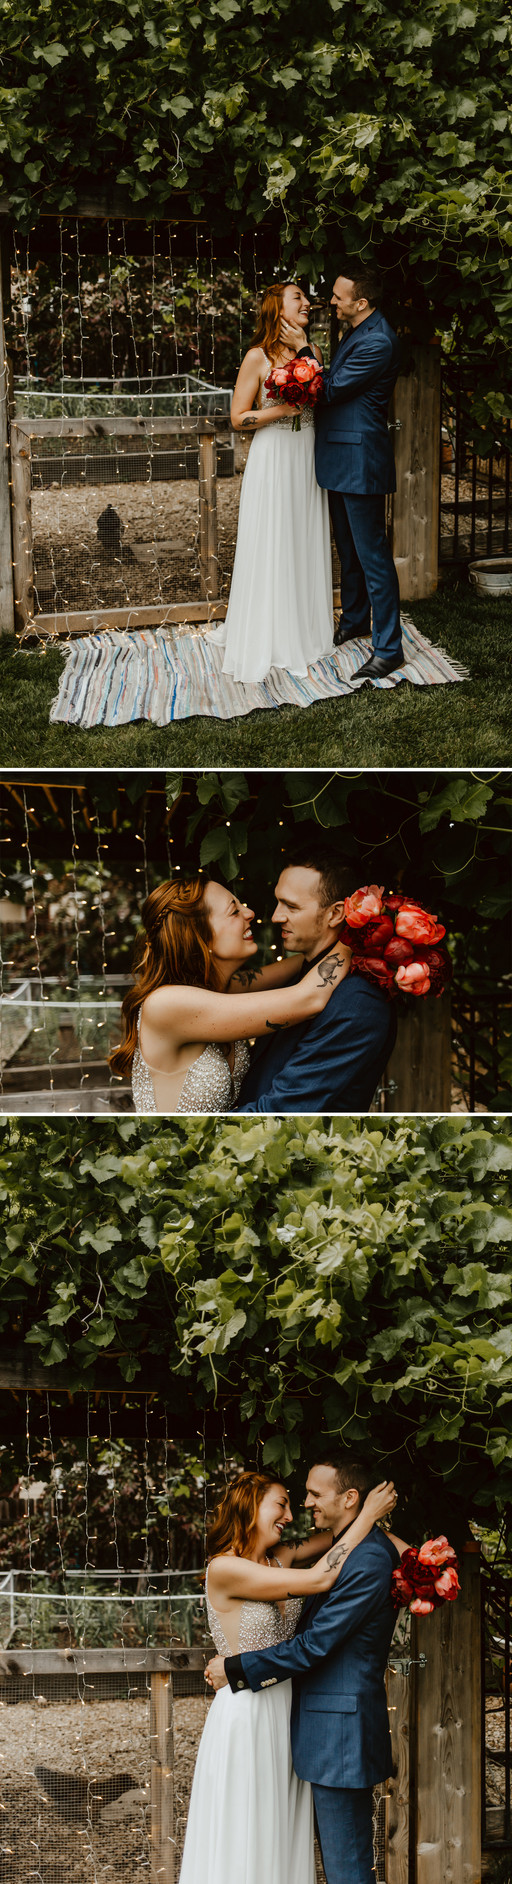 Andy and Nicole standing under green foliage holding bridal bouquet.